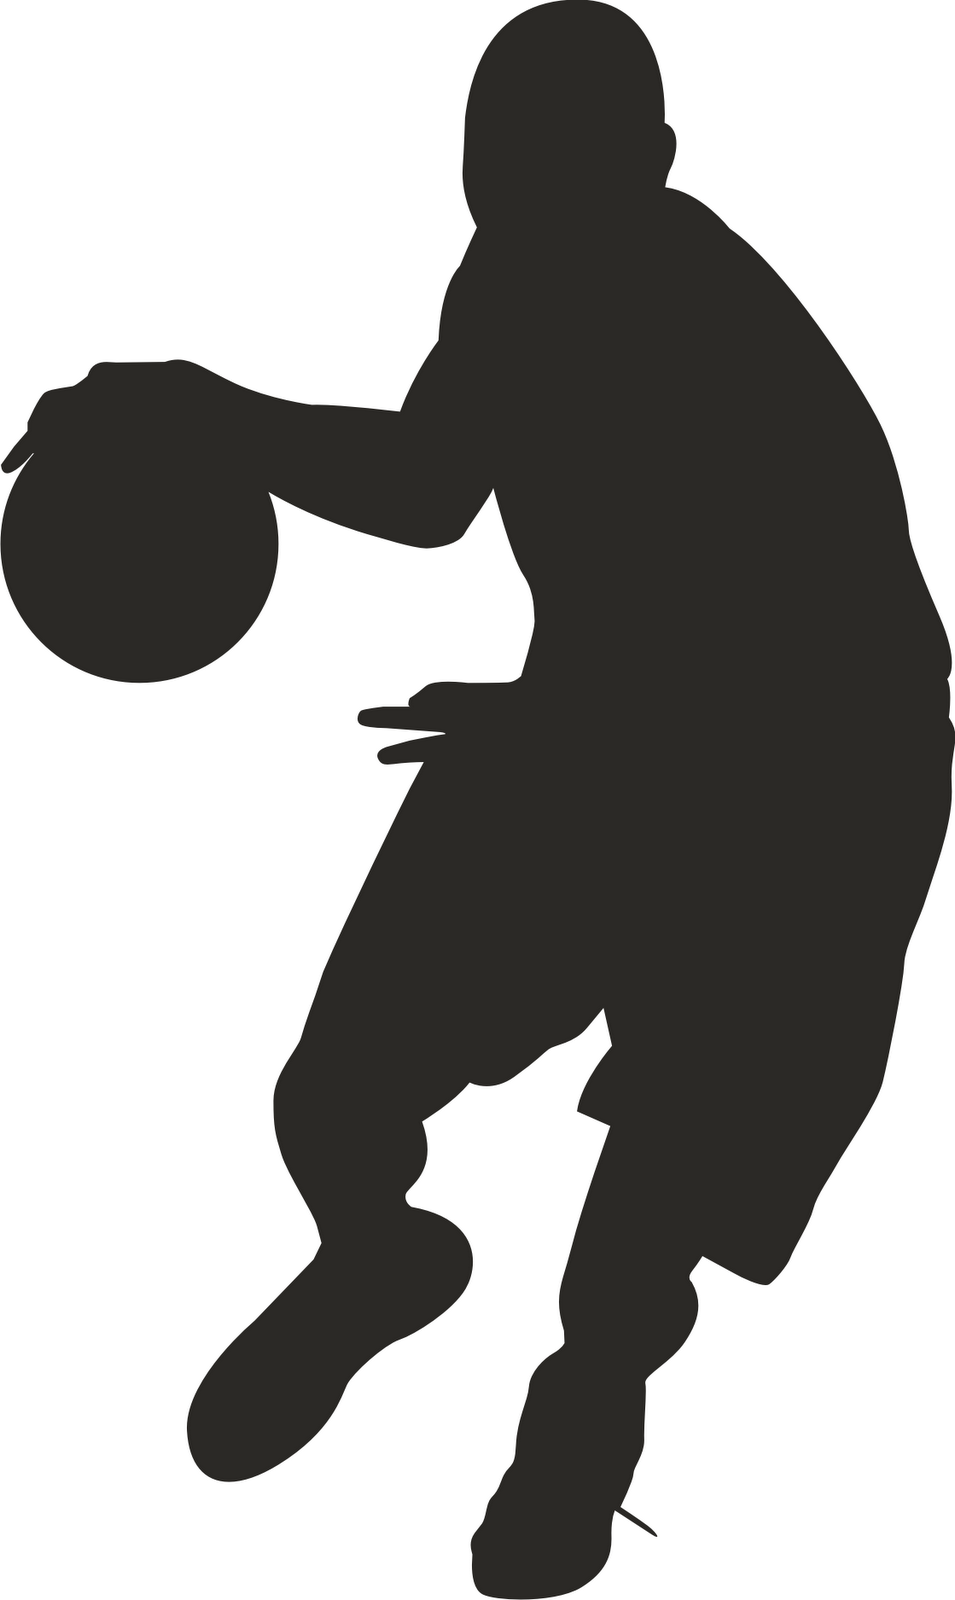 11 basket ball vector free cliparts that you can download to you ...